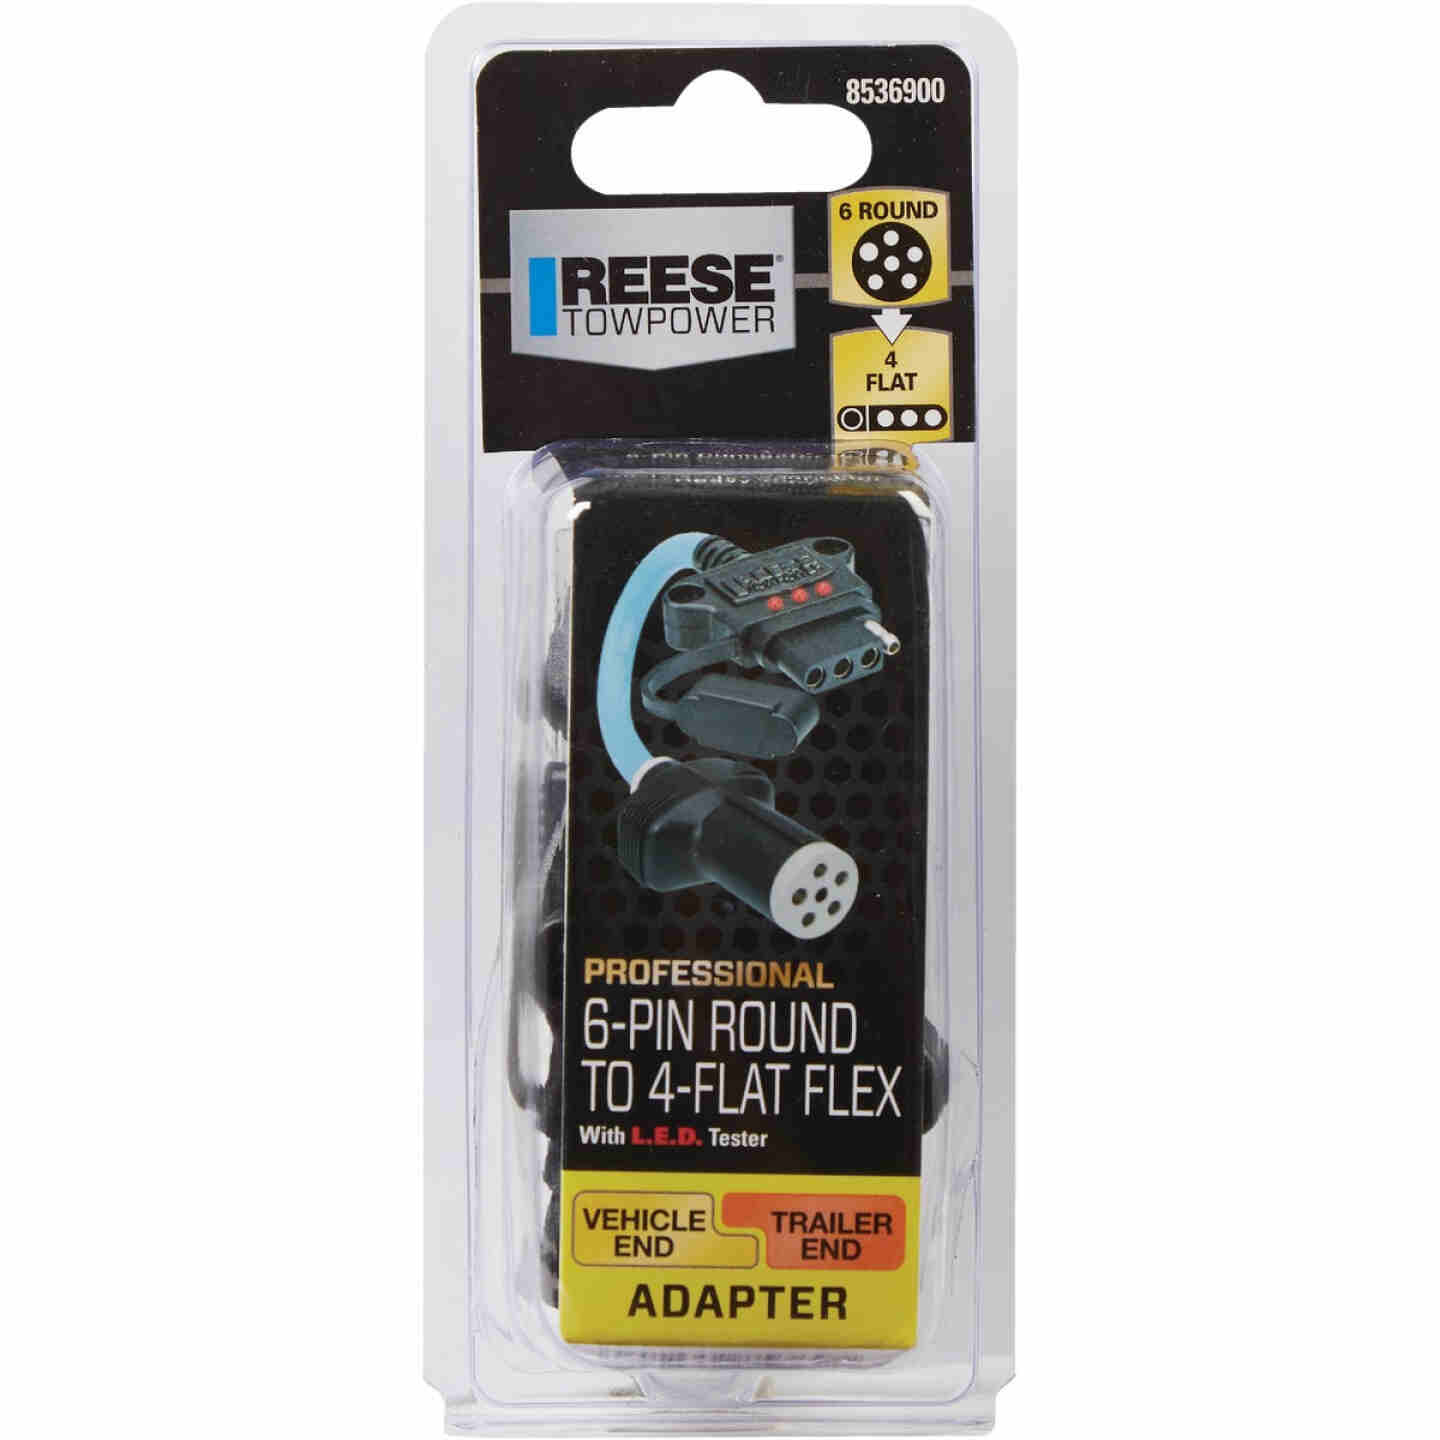 Reese Towpower Professional 6-Pin Round to 4-Flat Flex Plug-In Adapter with LED Tester Image 2